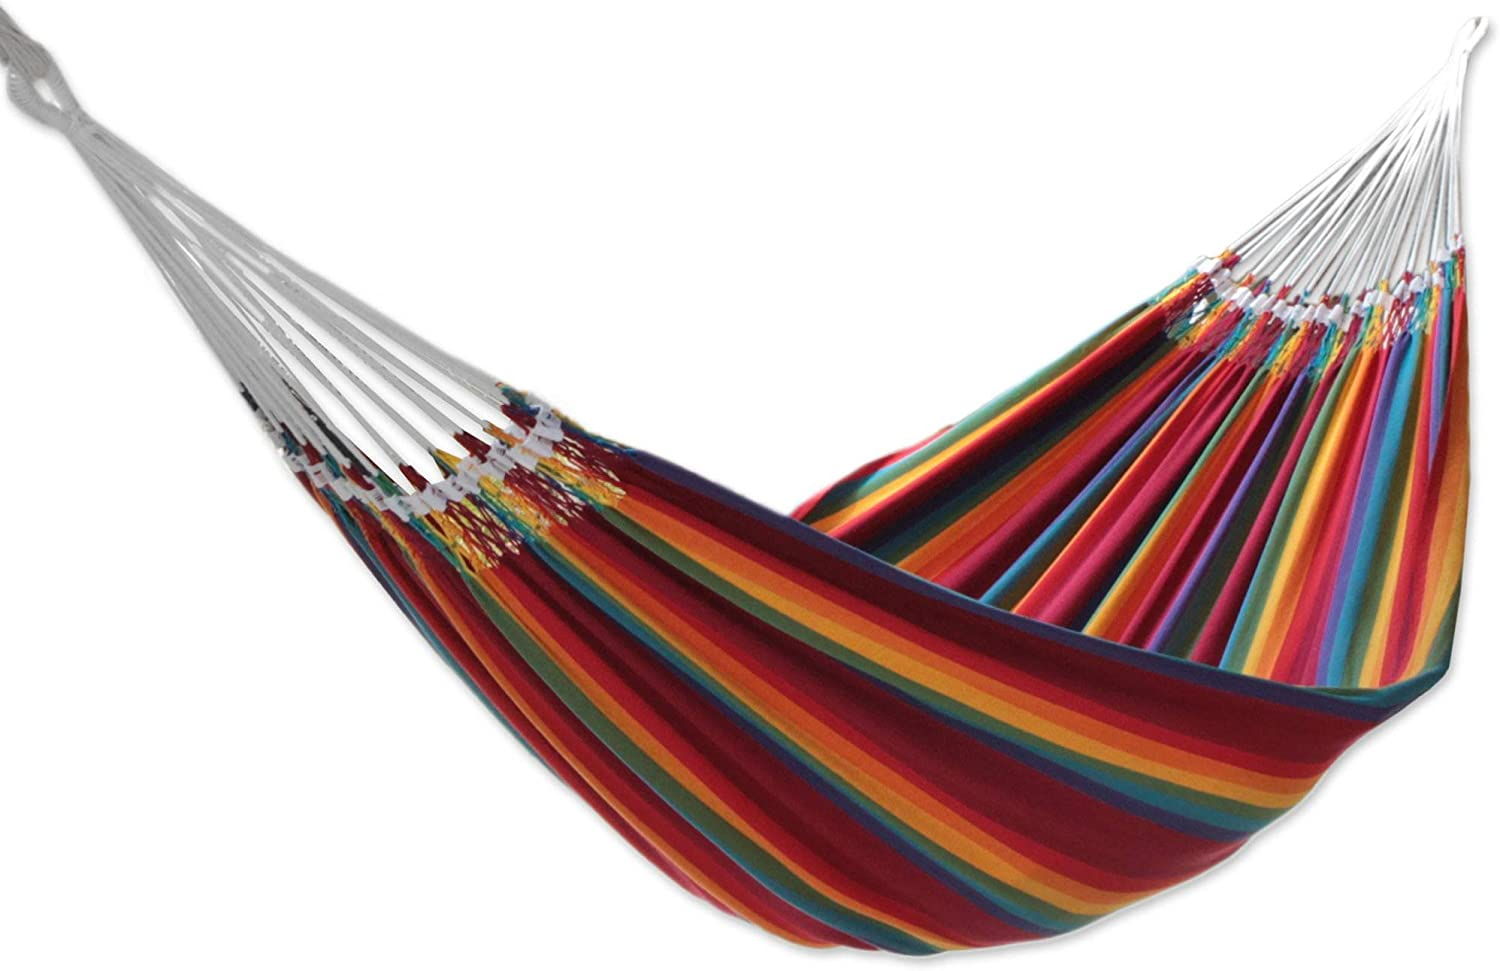 NOVICA Hand Woven Multi-Color Striped Cotton 2 Person Hammock, Brazilian Rainbow double – HAM0010